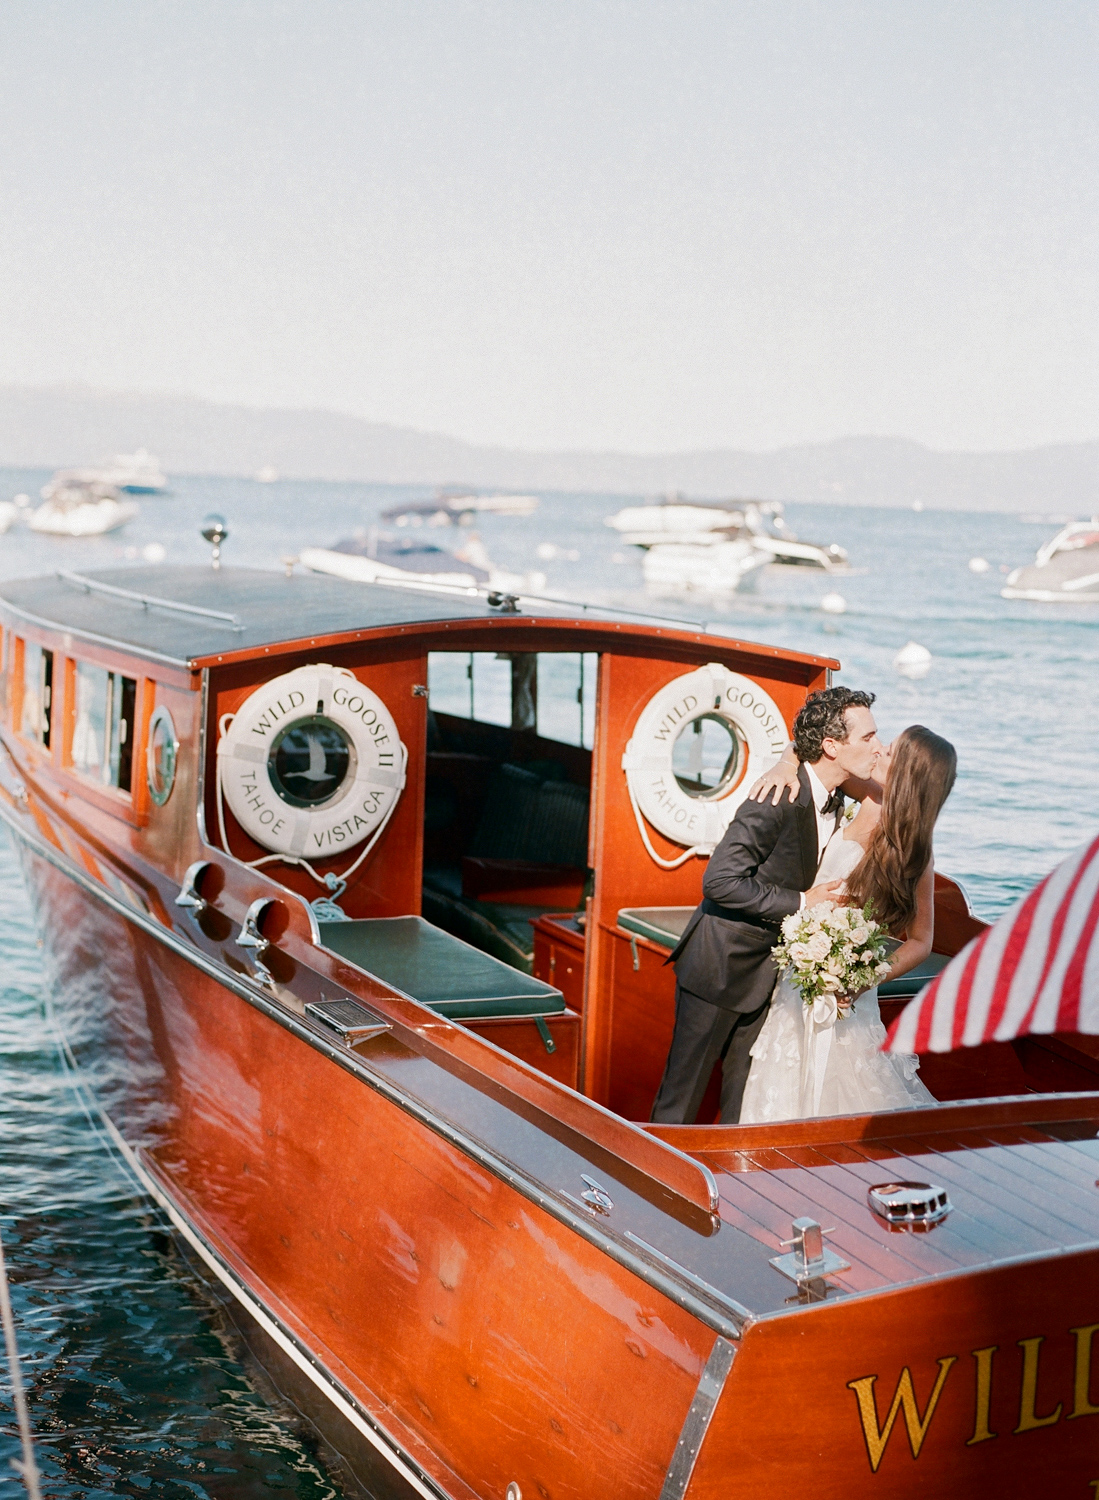 Natalie and Grant wedding couple kissing on red boat on lake